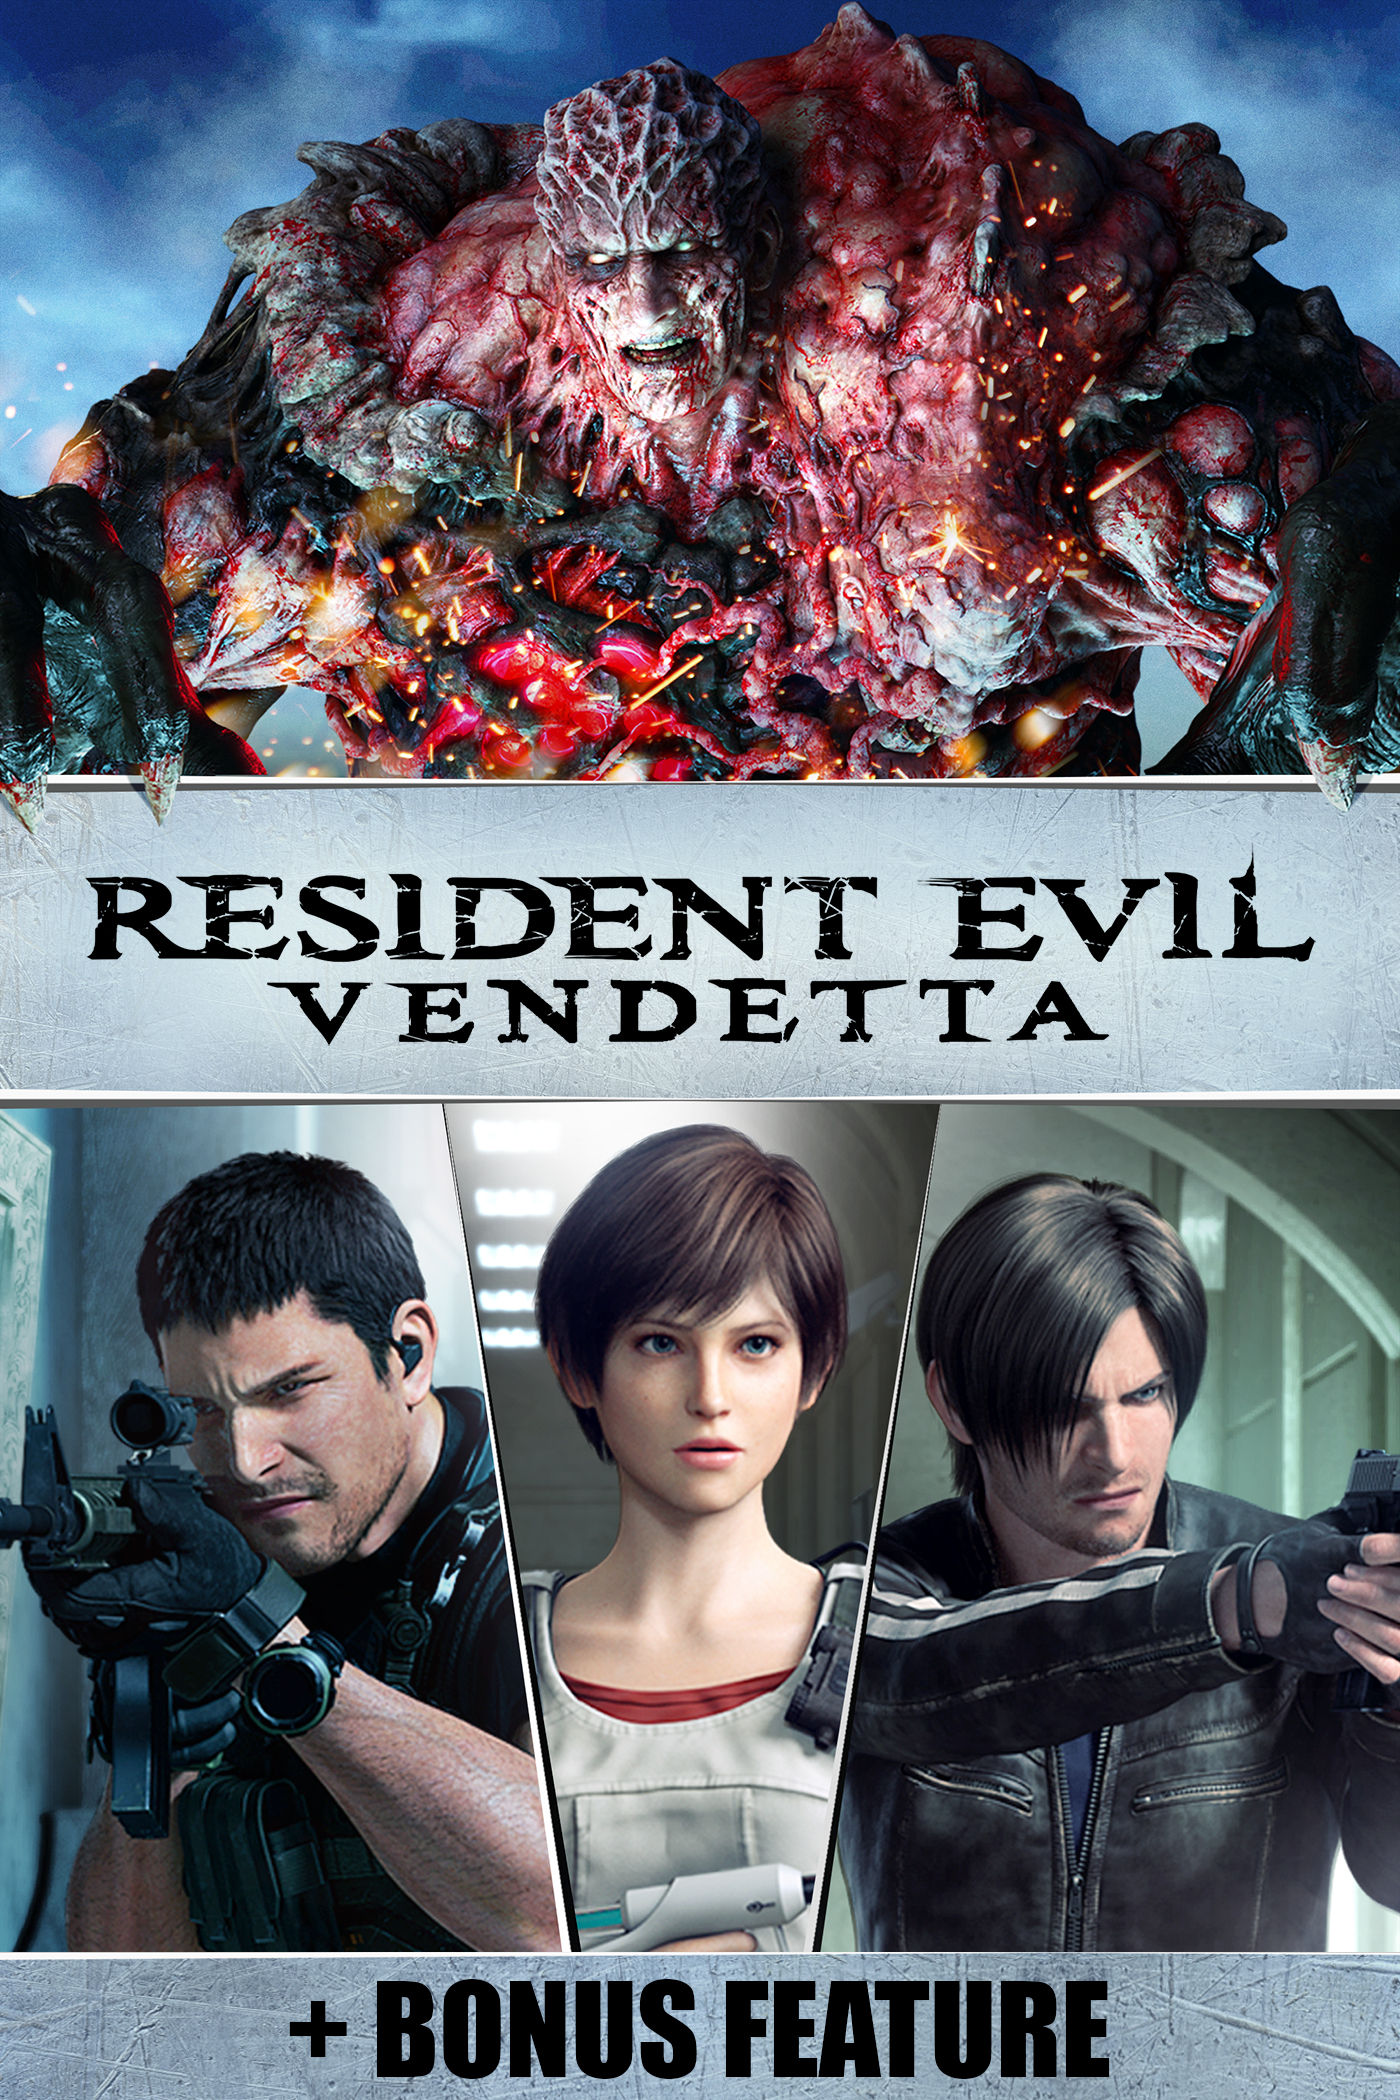 Resident Evil Vendetta (+ Bonus Feature)